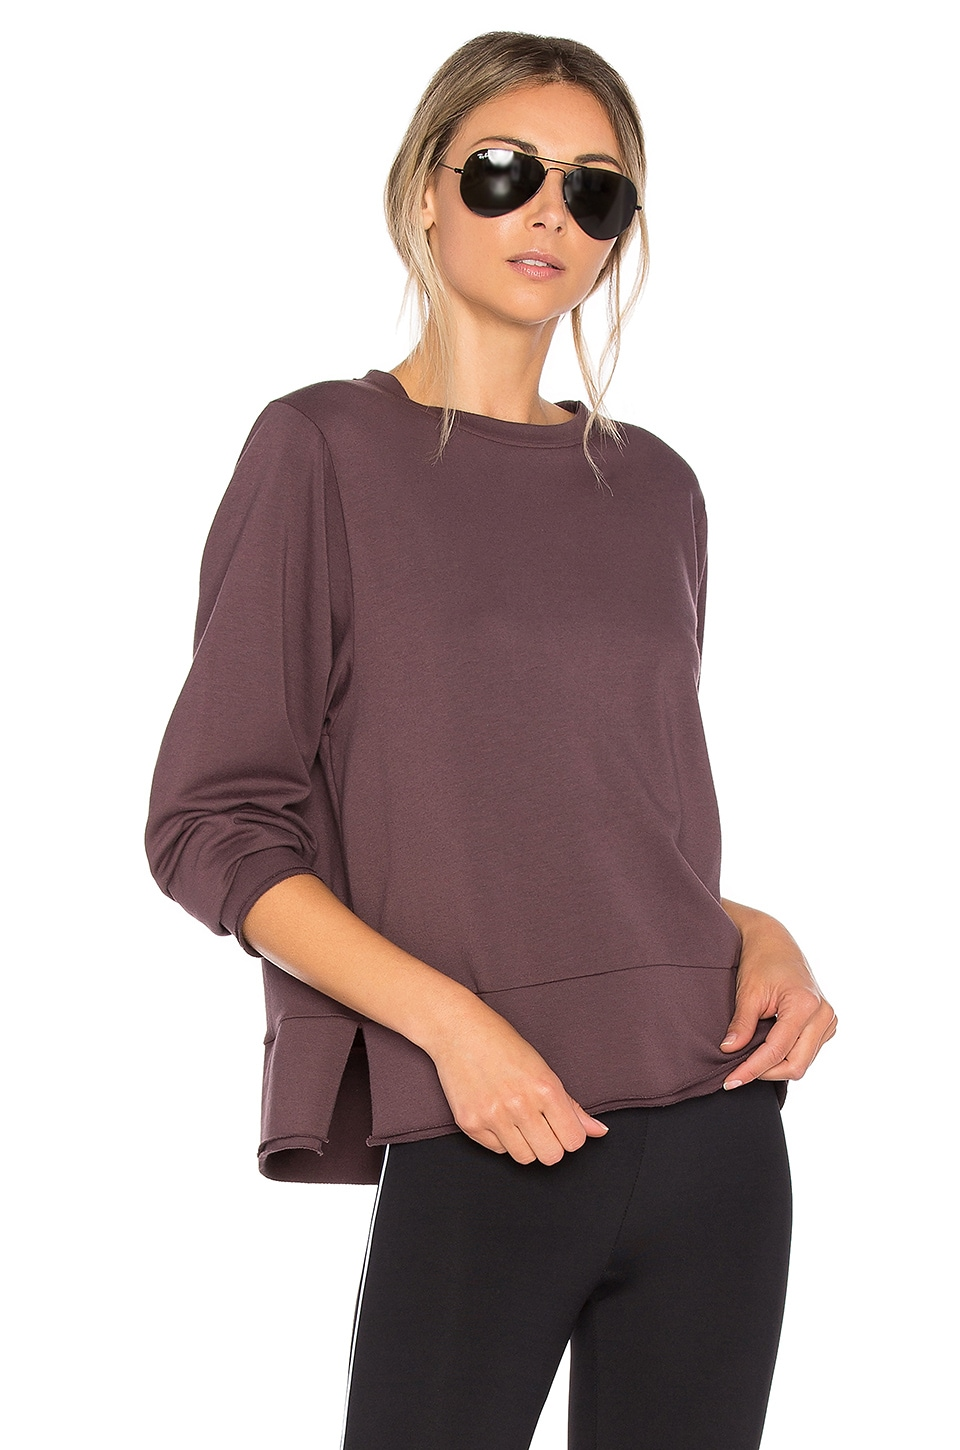 KORAL Global Sweatshirt in Bordeaux